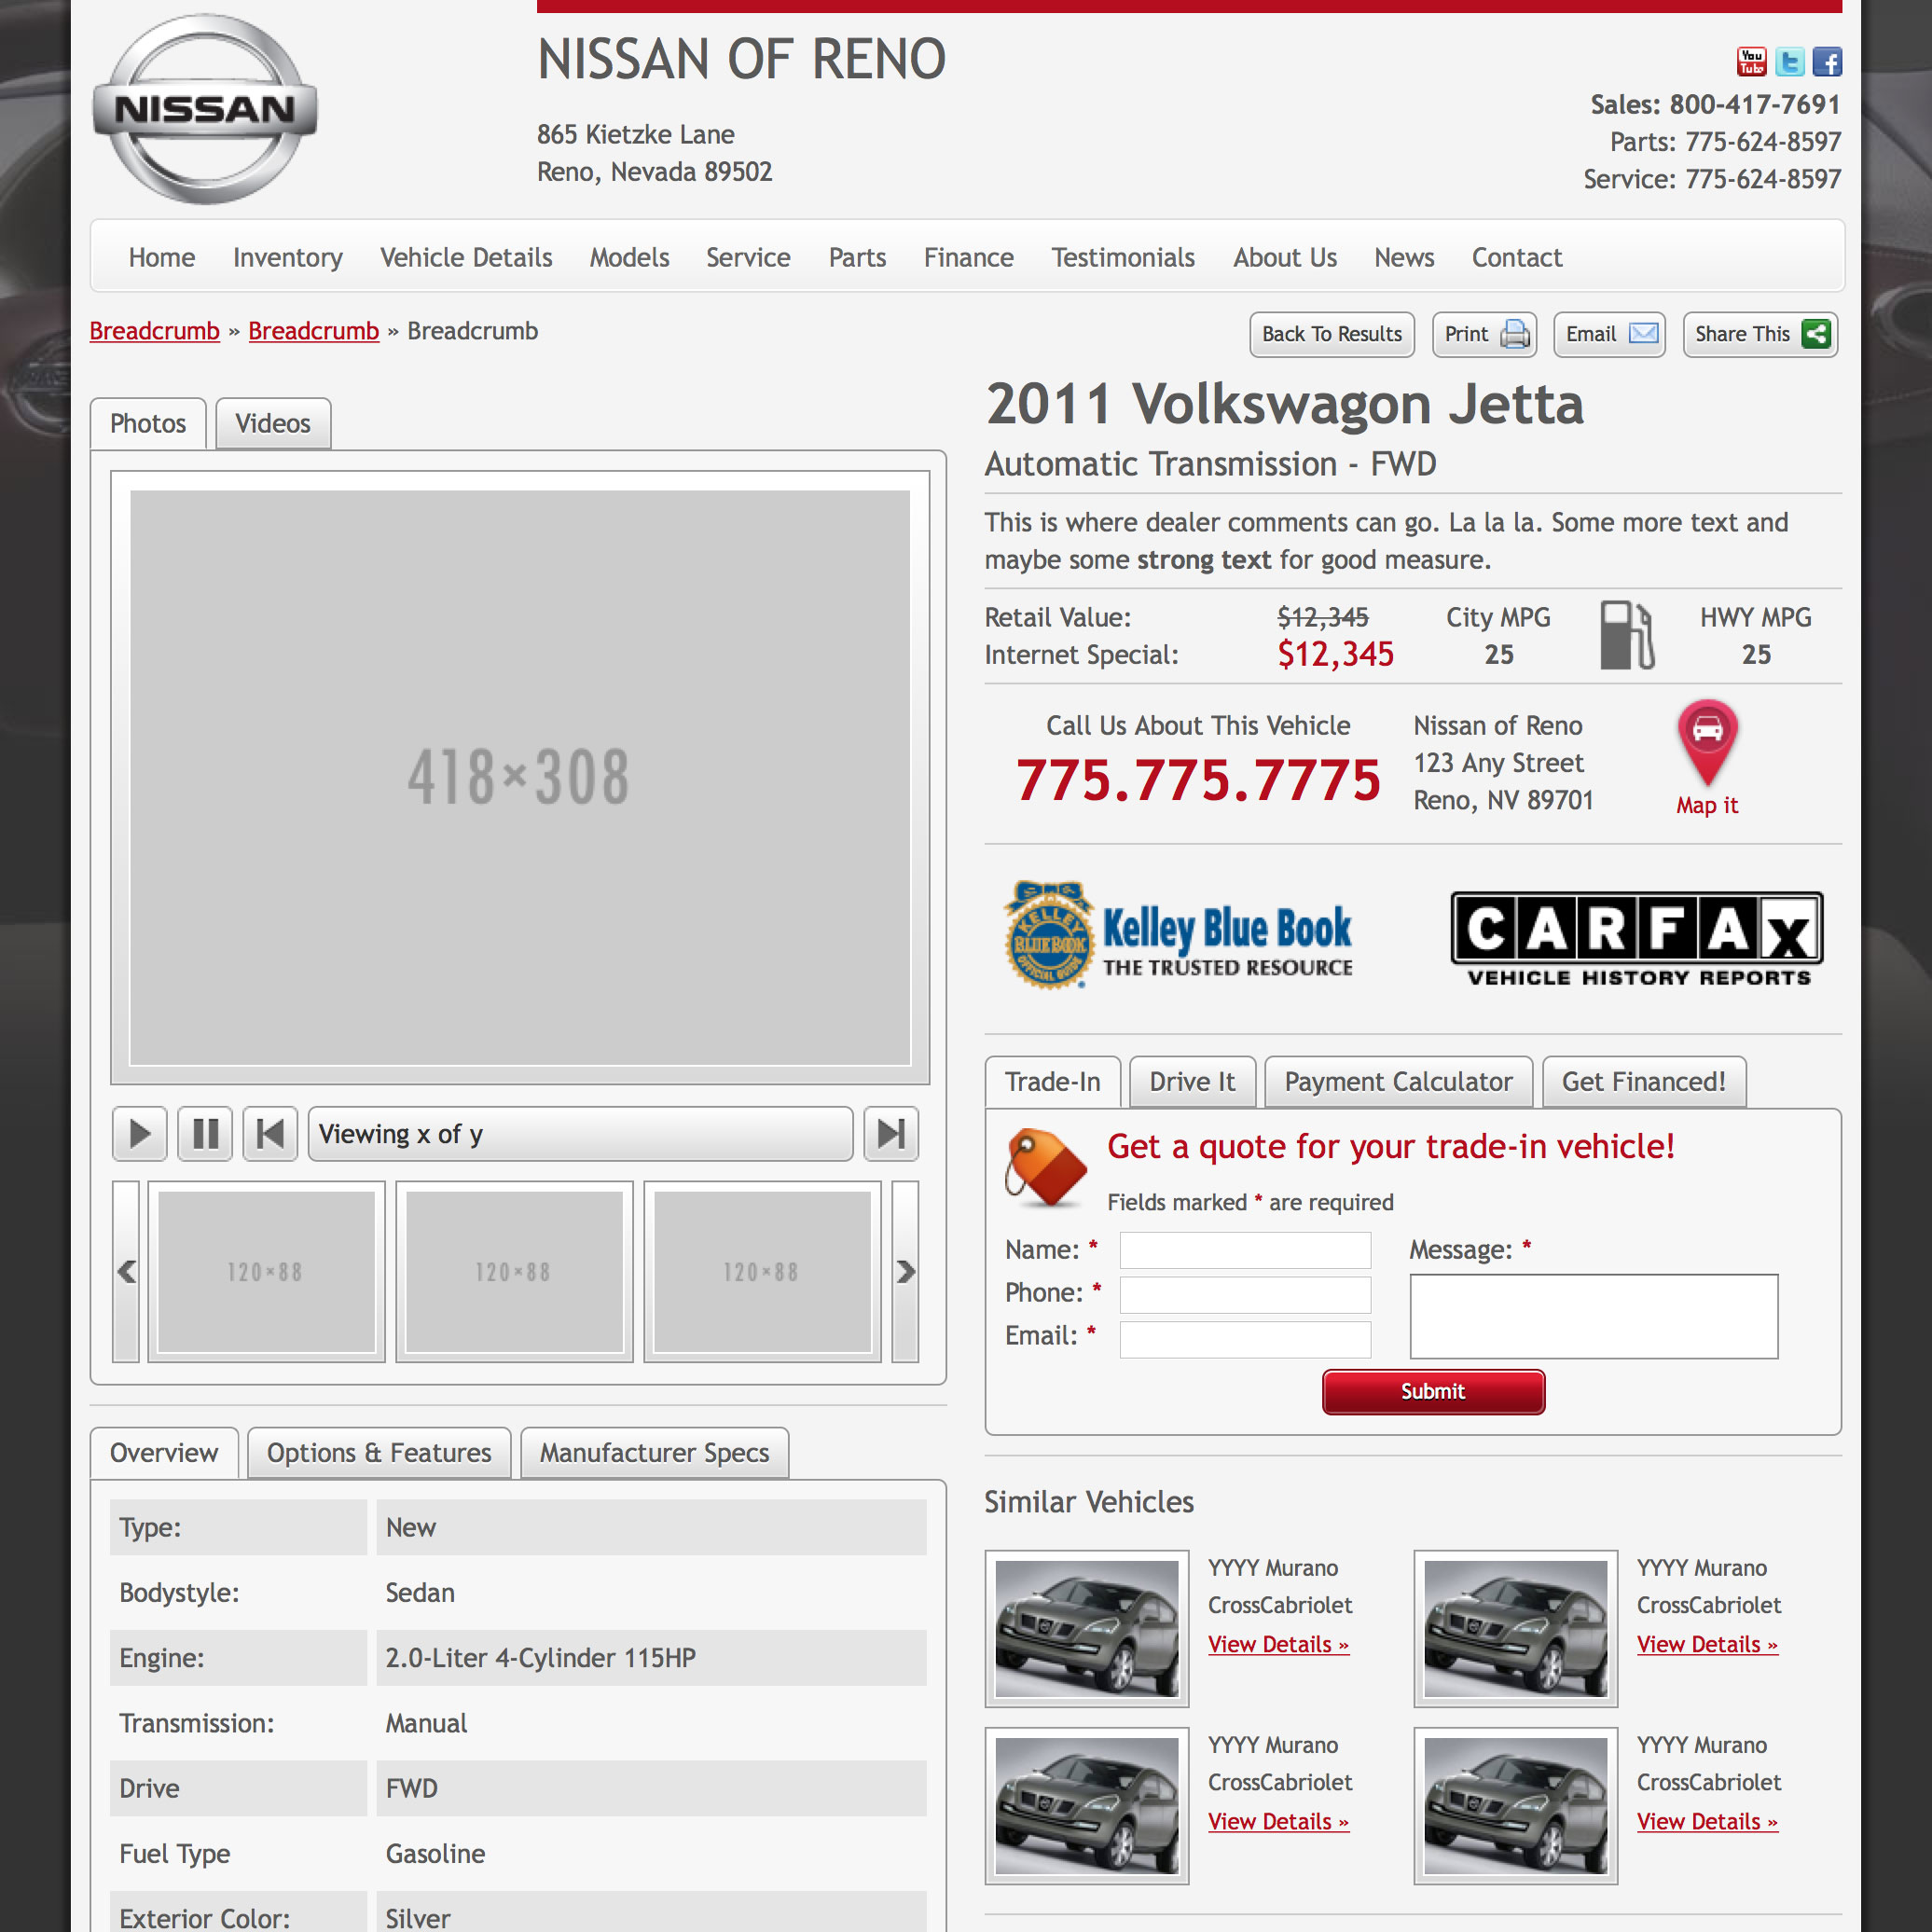 Nissan Kentico Template